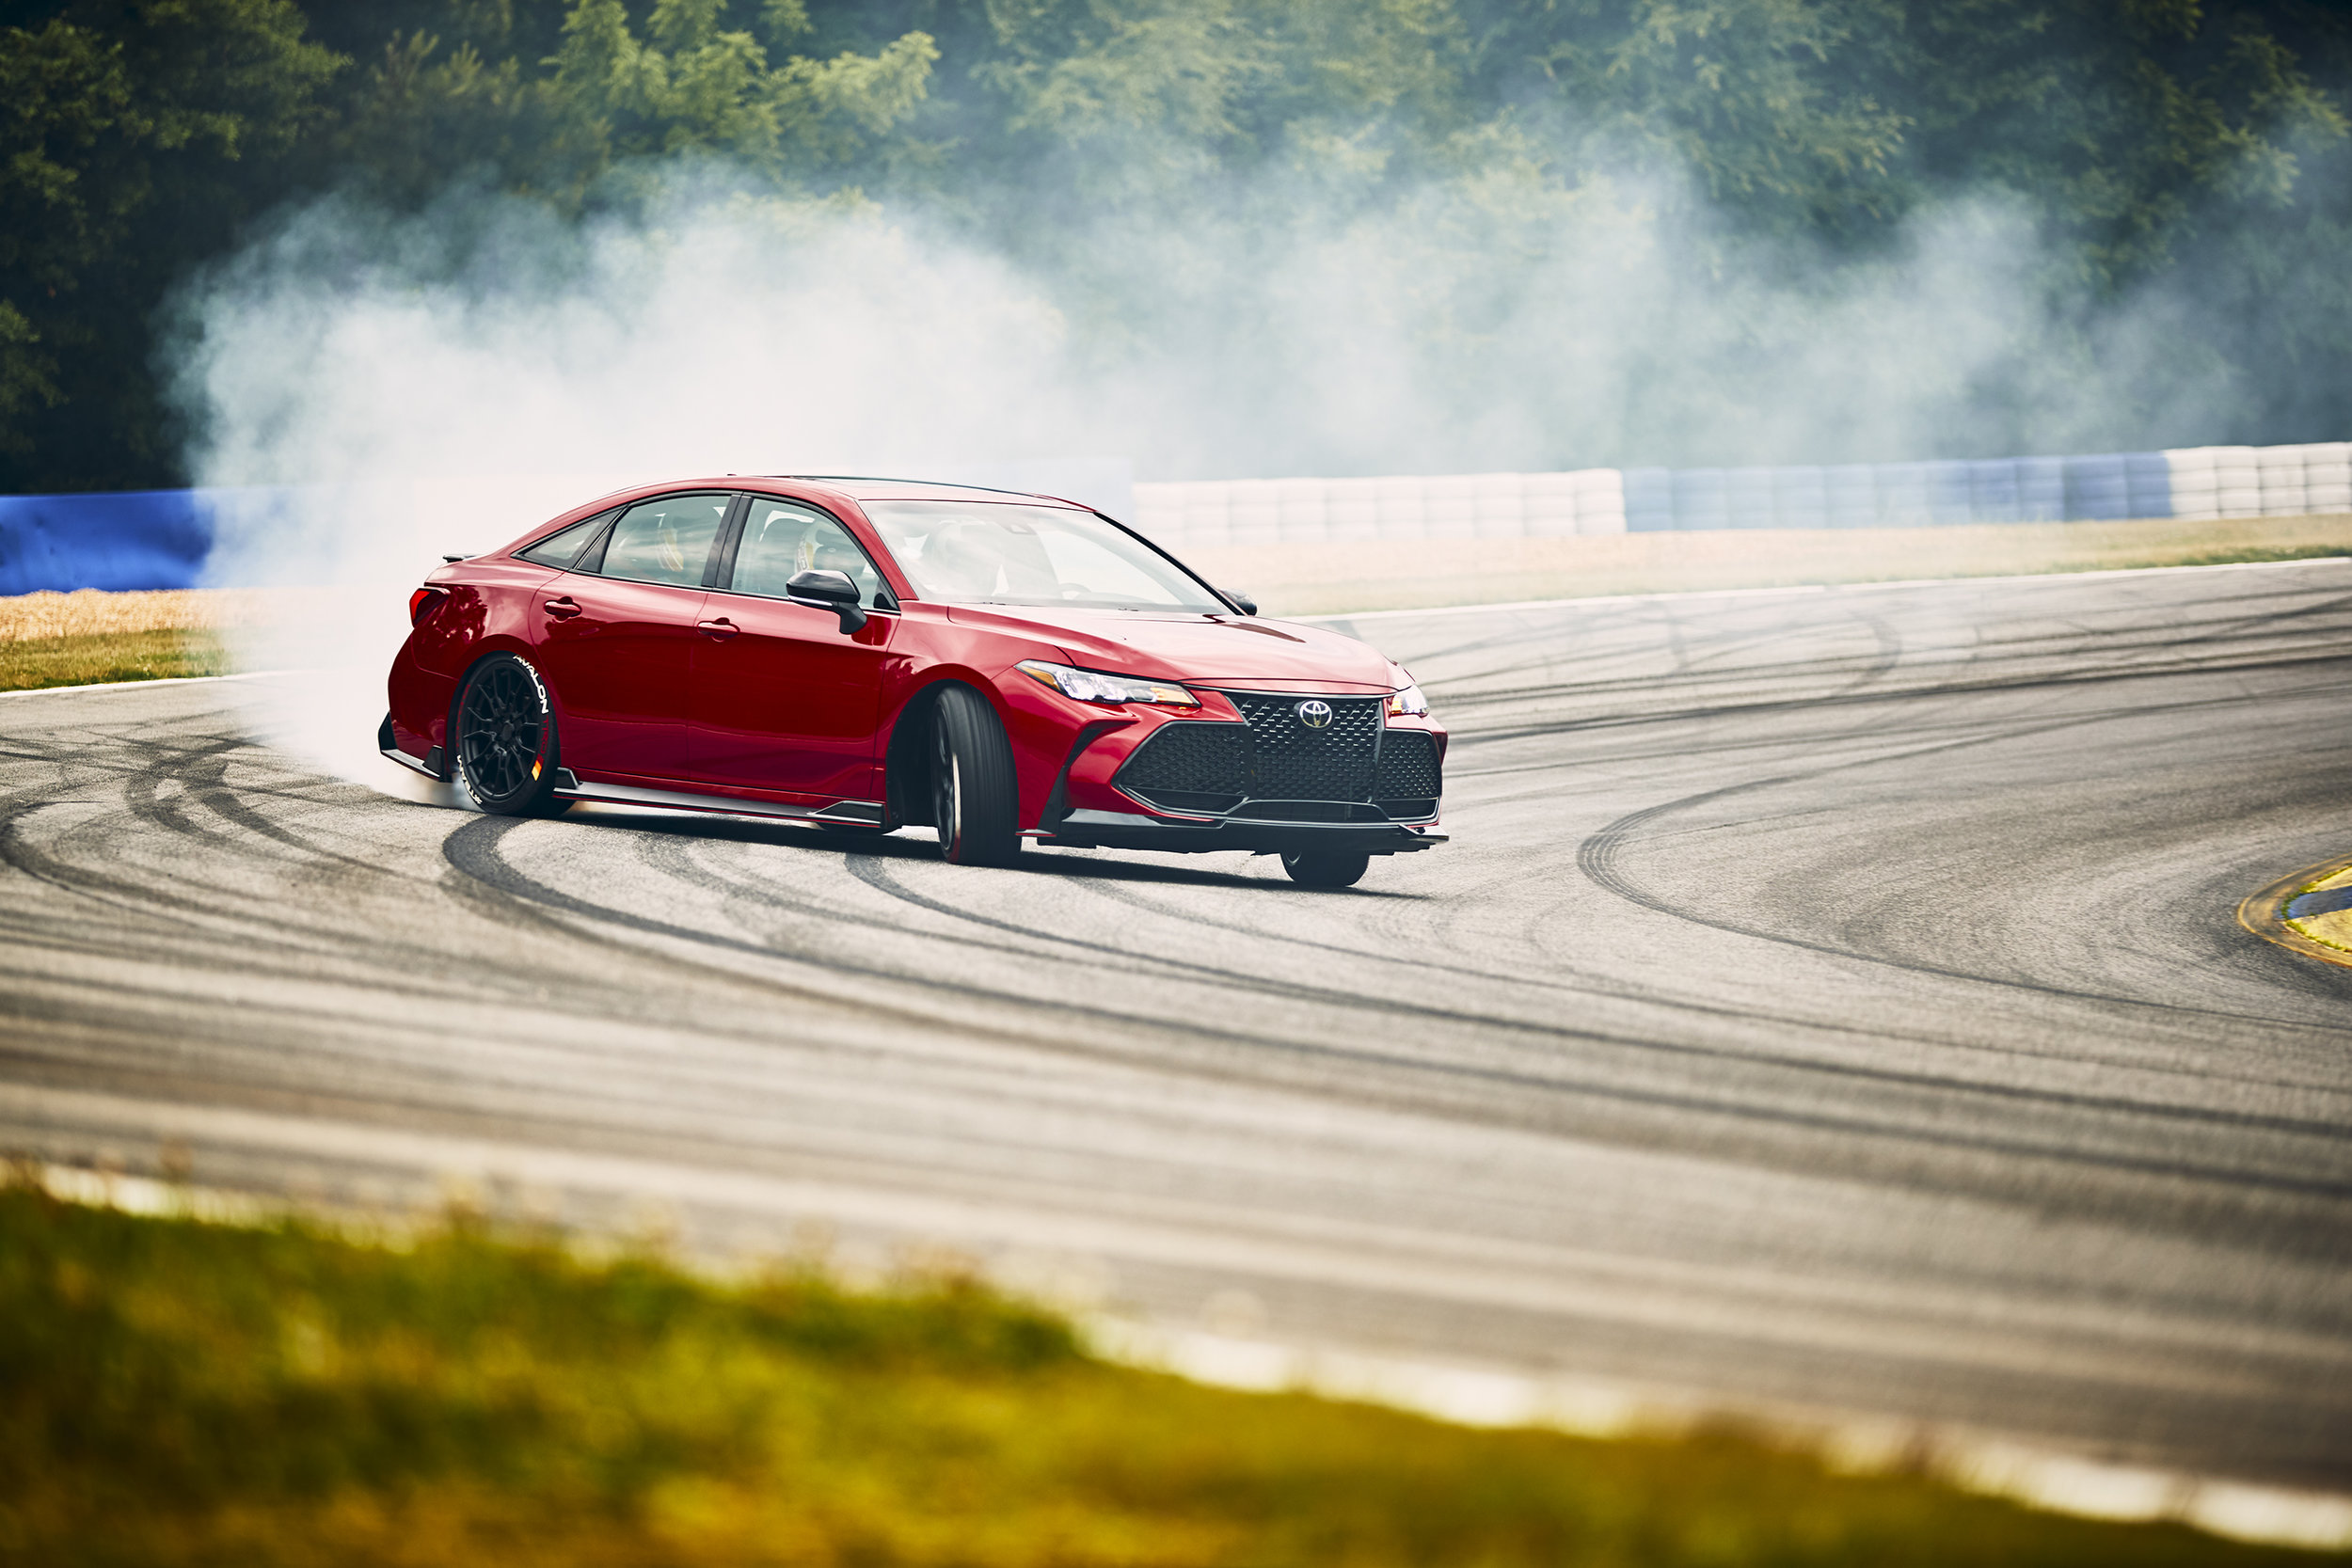 Formula Drift Pro, Ken Gushi, will be racing the TRD Avalon Pro in Time Attack at the #GRIDLIFE ATL Festival